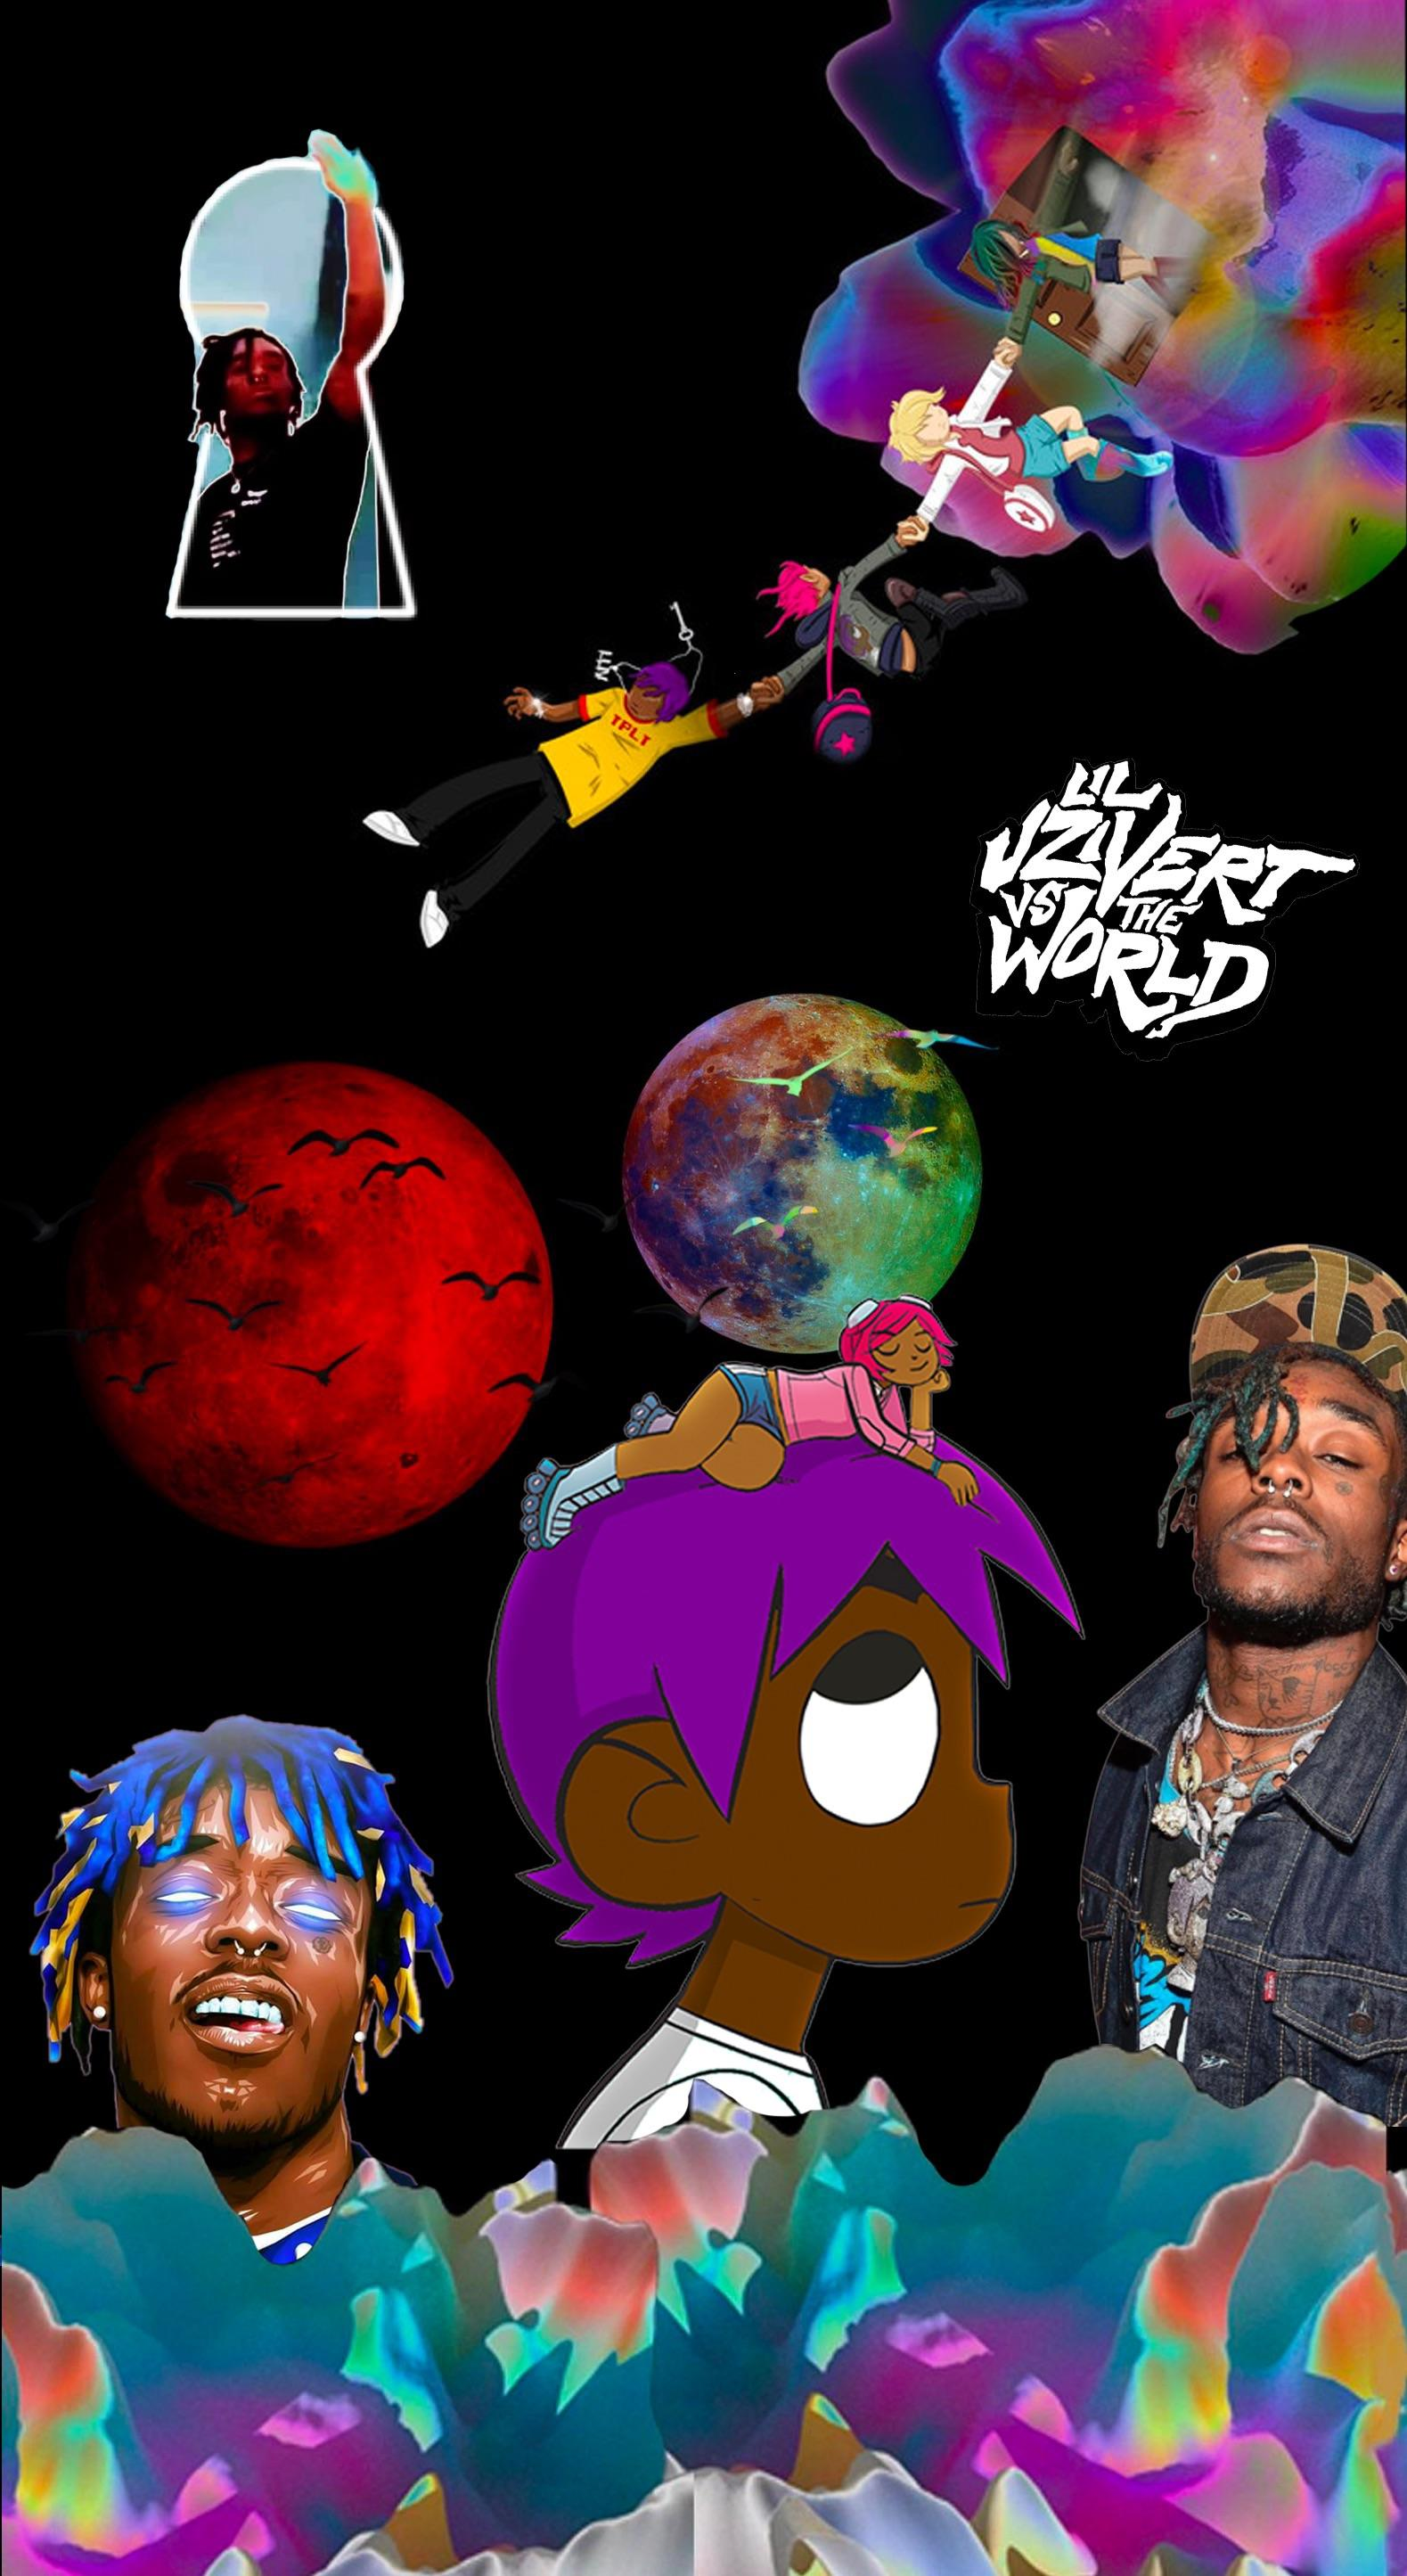 Lil Uzi Vert Eternal Atake Wallpapers Wallpaper Cave